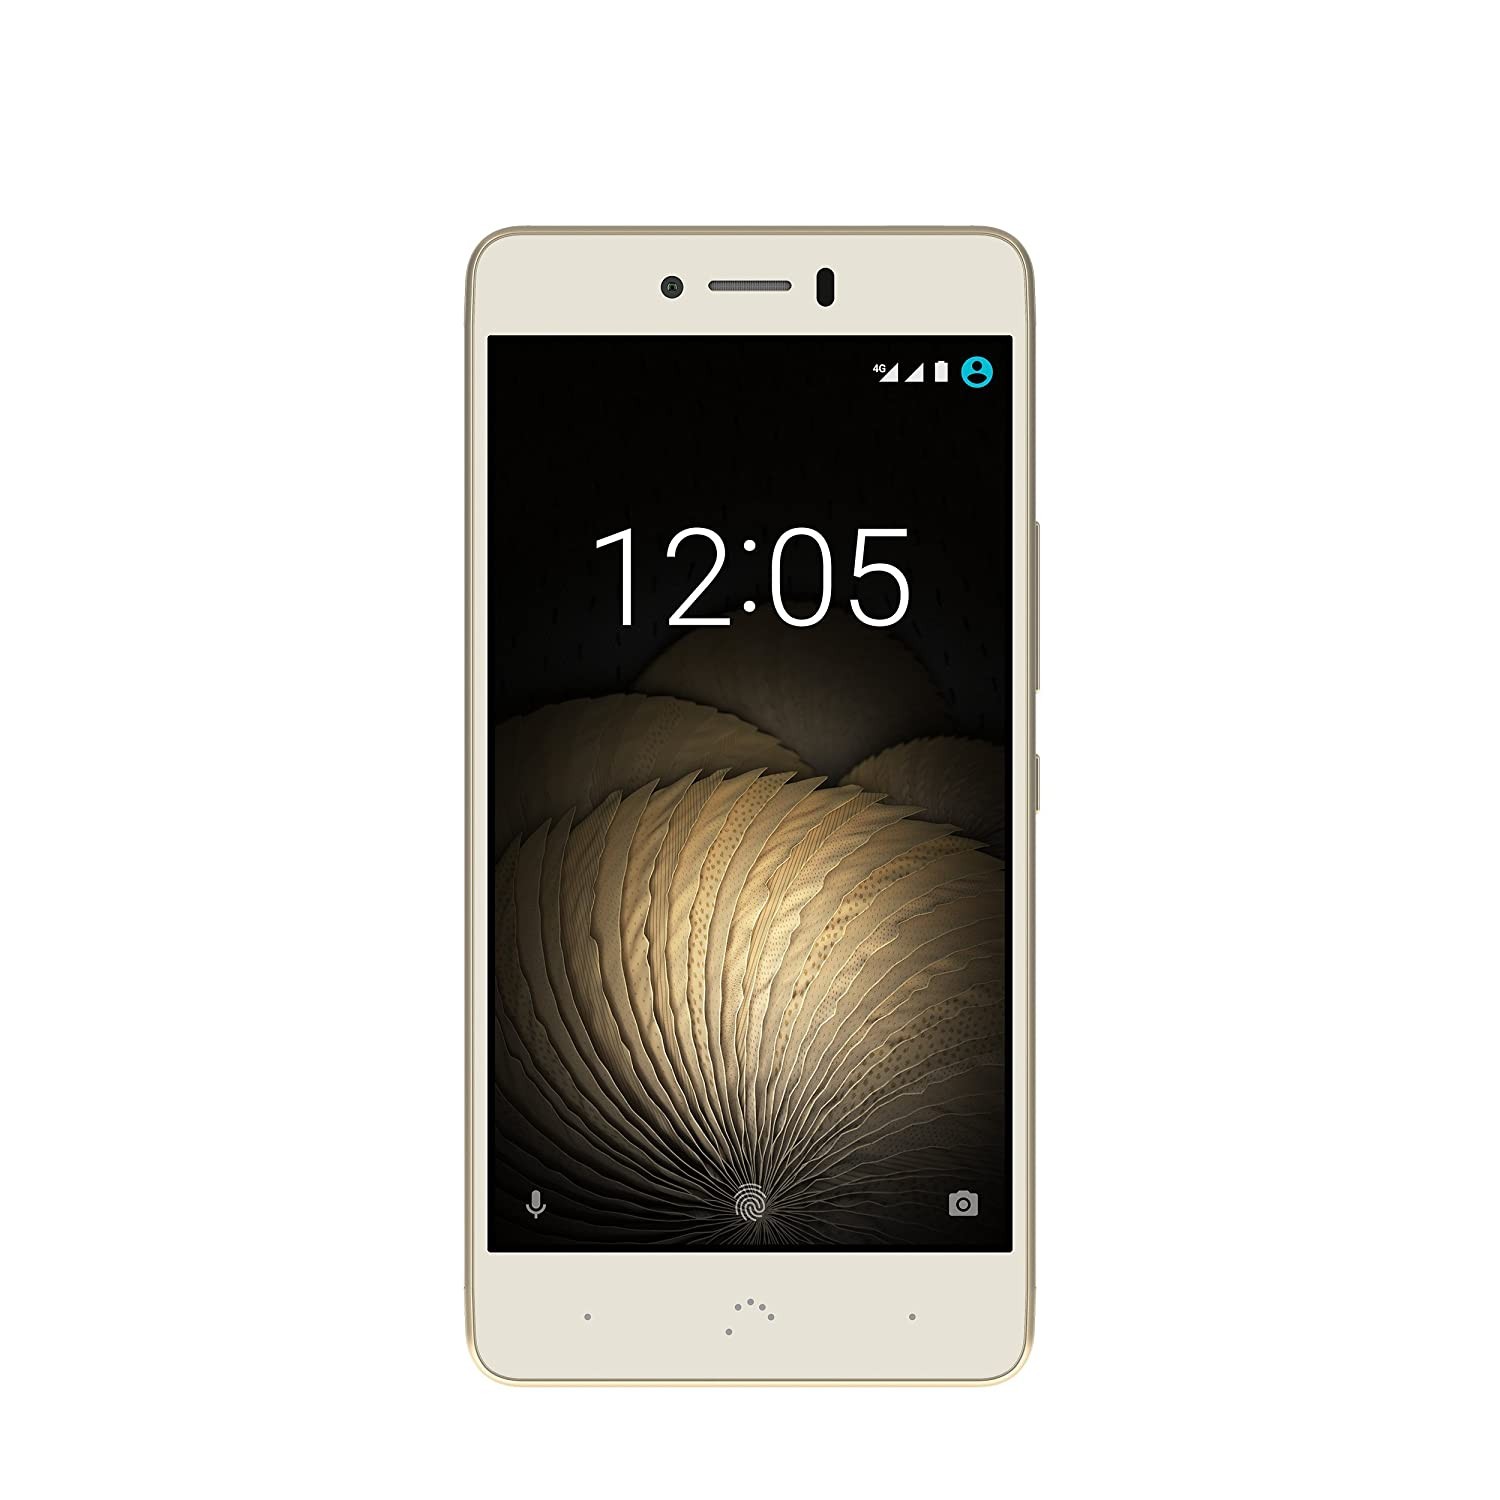 TALLA 16 ROM + 2 RAM. BQ Aquaris U Plus - Smartphone de 5'' (4G, WiFi, Bluetooth 4.2, Qualcomm Snapdragon 430 Octa Core, 16 GB de Memoria Interna, 2 GB de RAM, cámara de 16 MP, Android 6.0.1 Marshmallow) Blanco y Dorado